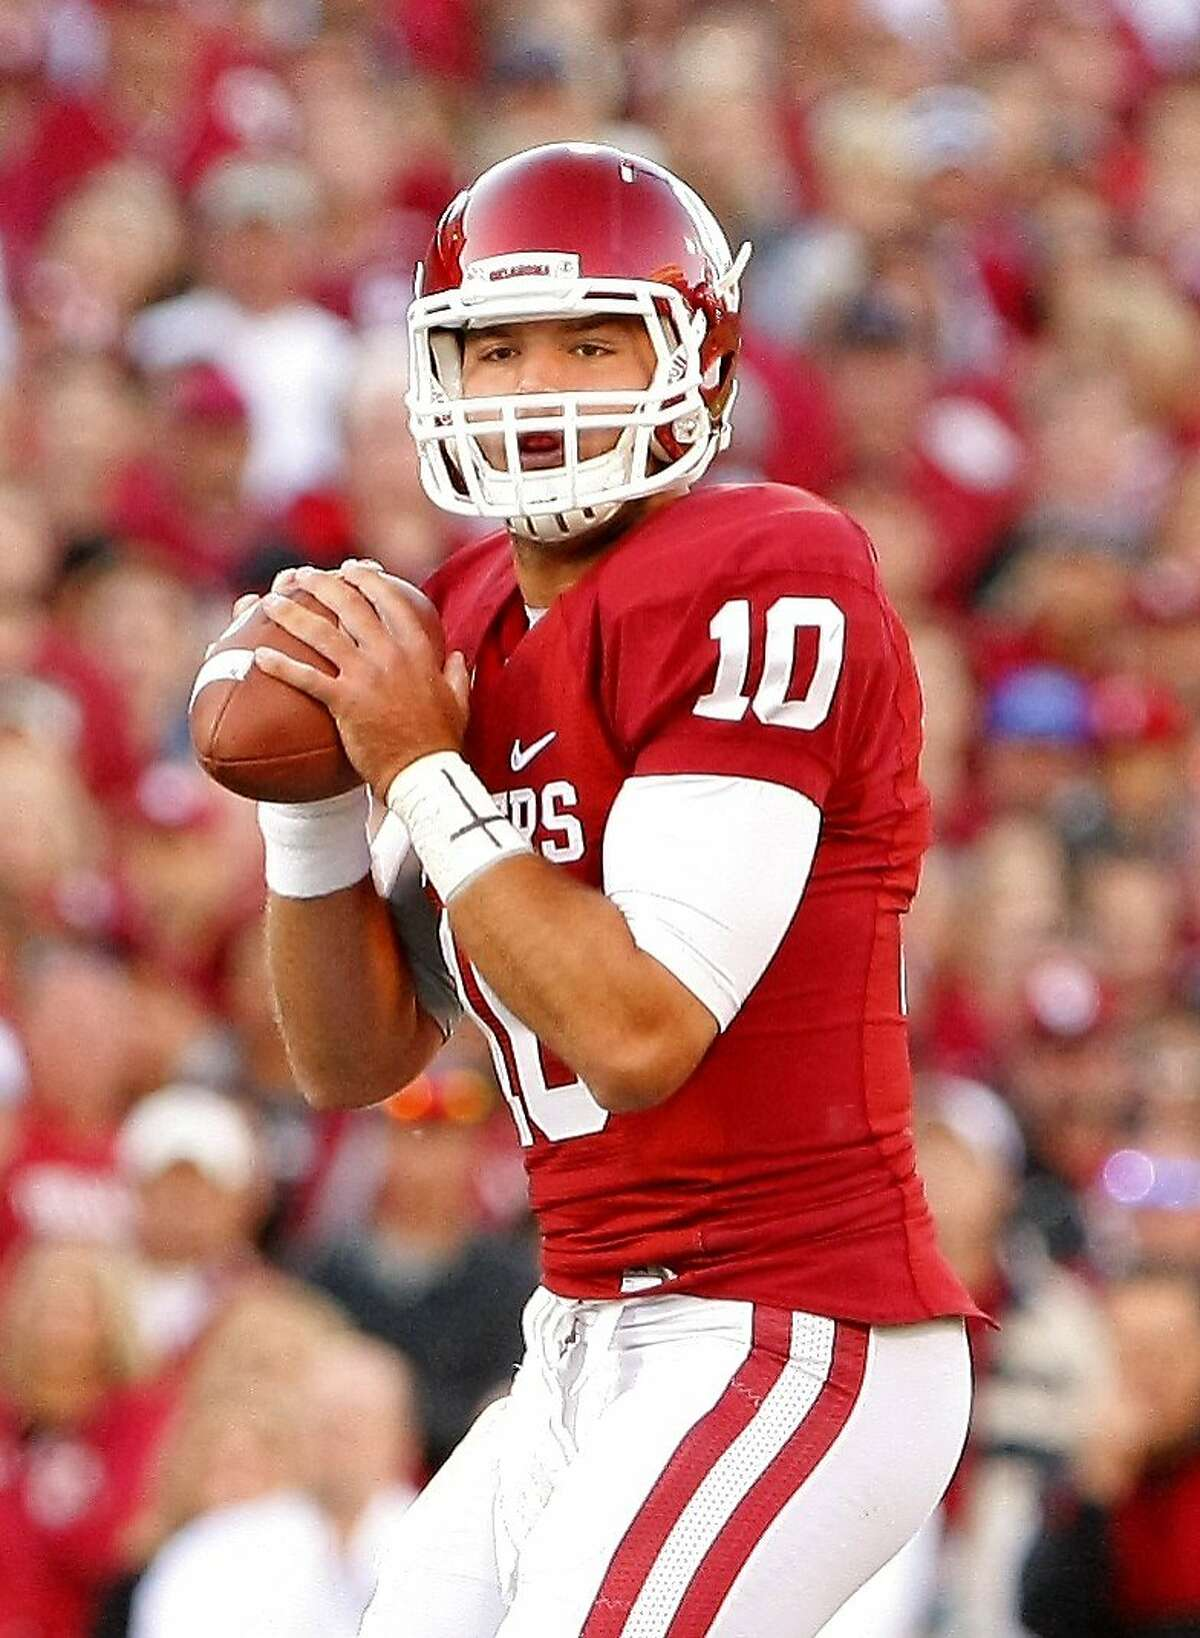 Oklahoma quarterback Blake Bell (10) throws a warm up pass before the start of an NCAA college football game against TCU on Saturday, Oct. 5, 2013, in Norman, Okla. (AP Photo/Alonzo Adams)